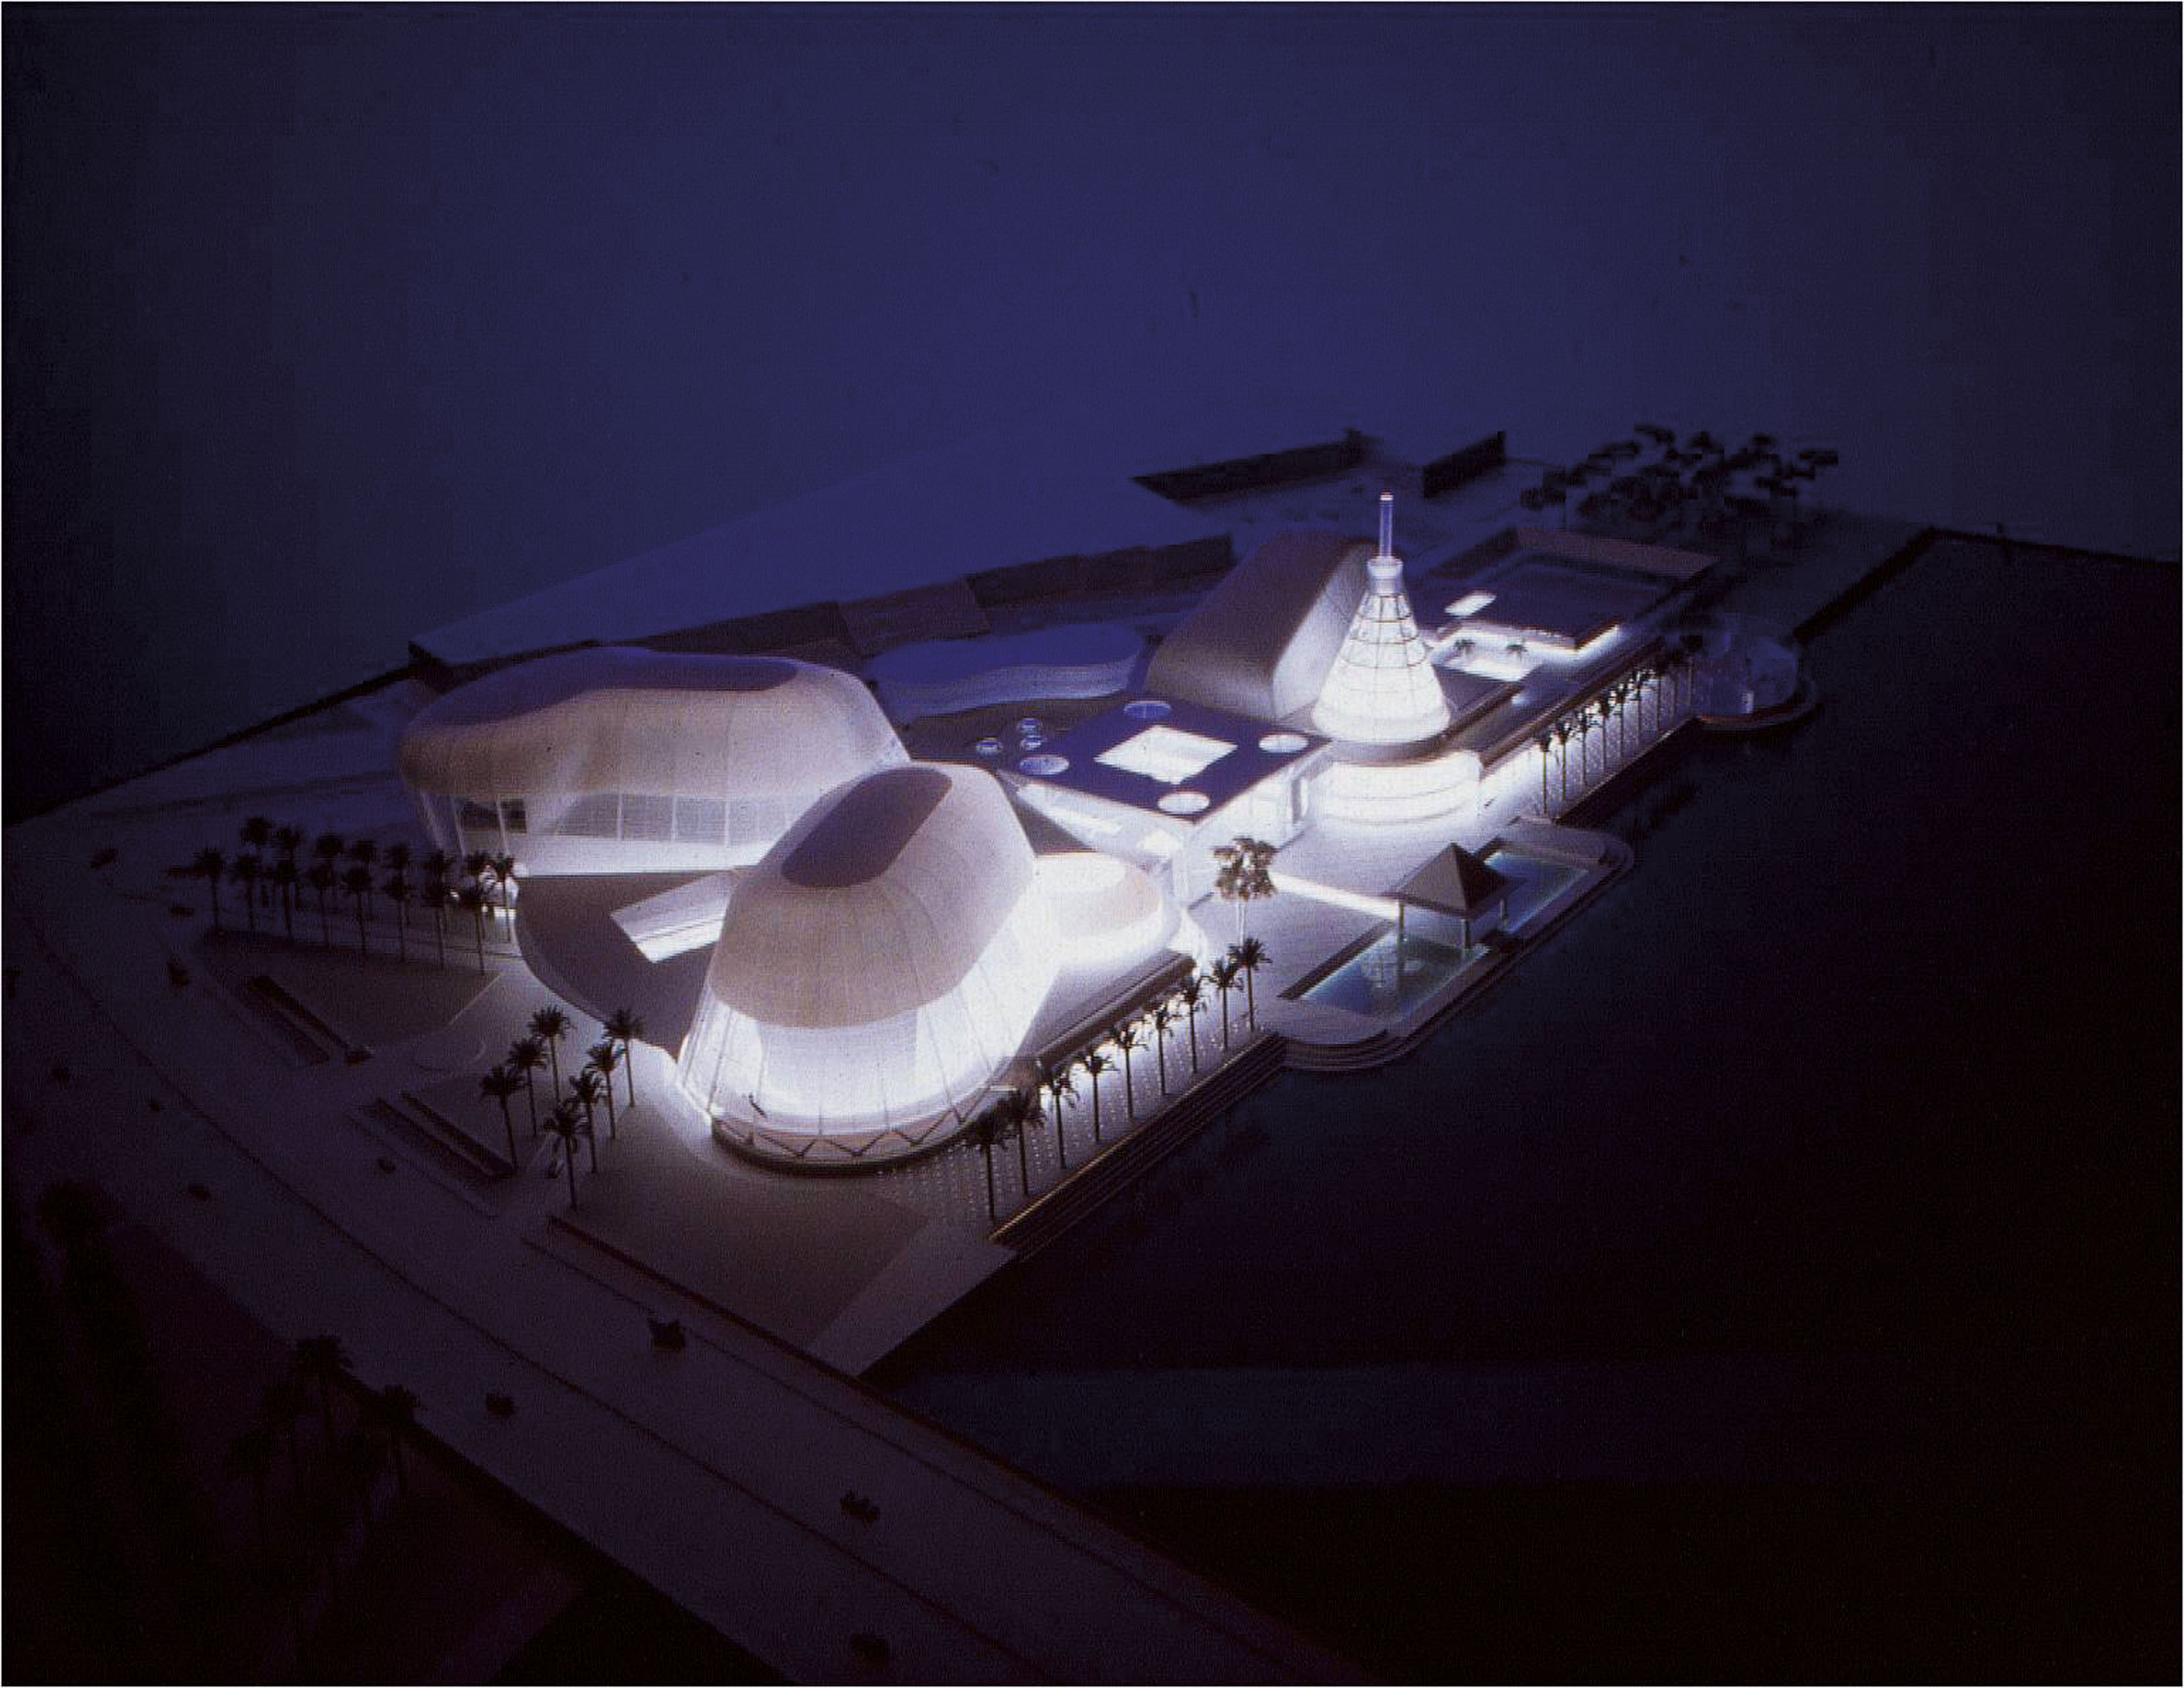 An early model of Esplanade in 1994.